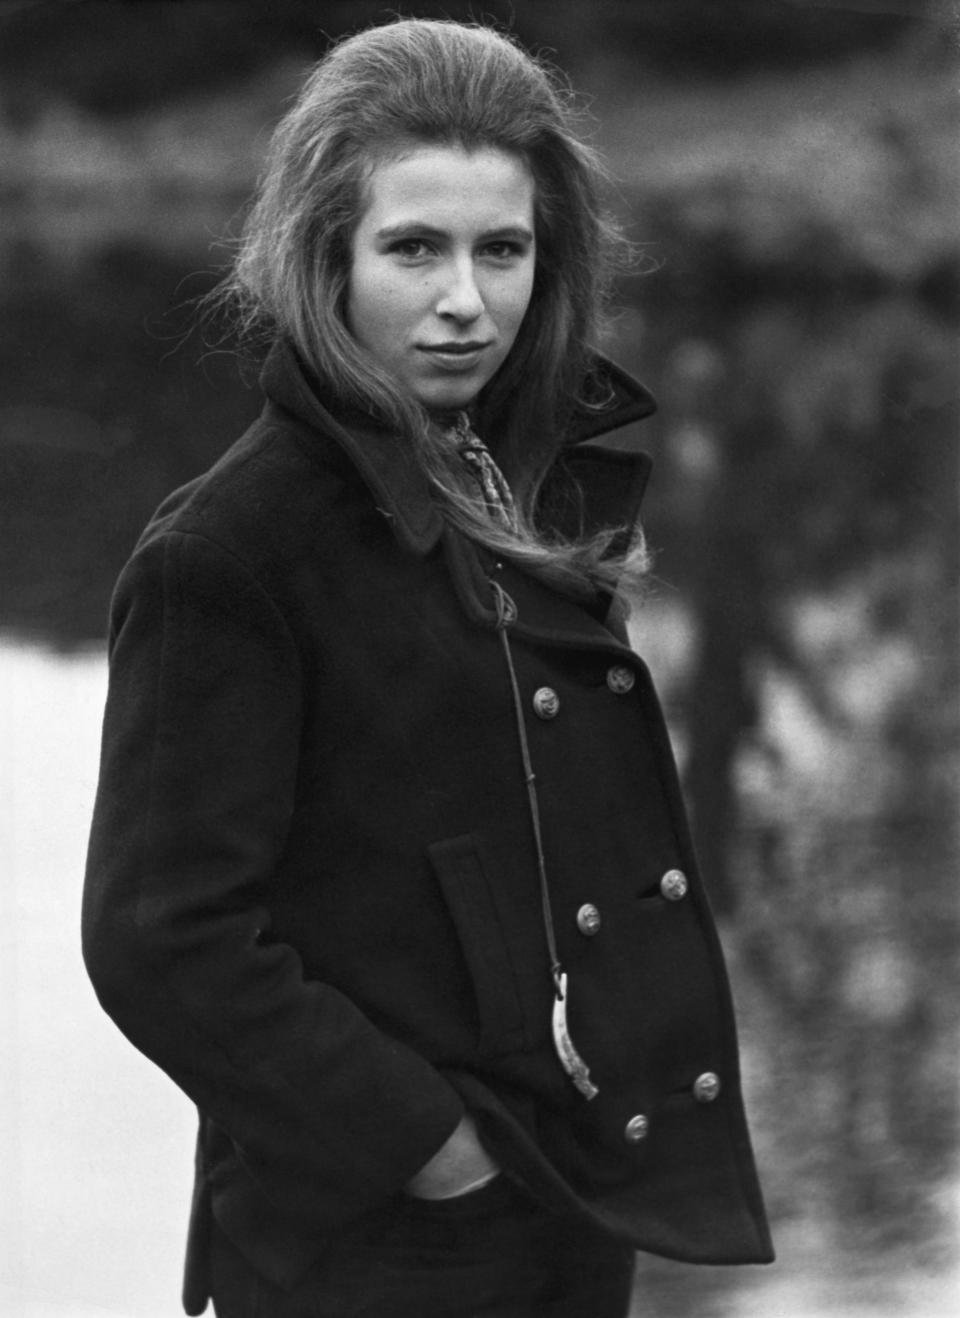 Princess Anne in the grounds of Sandringham, before the 1969 Royal Tour of Australia and New Zealand. (Photo by © Hulton-Deutsch Collection/CORBIS/Corbis via Getty Images)